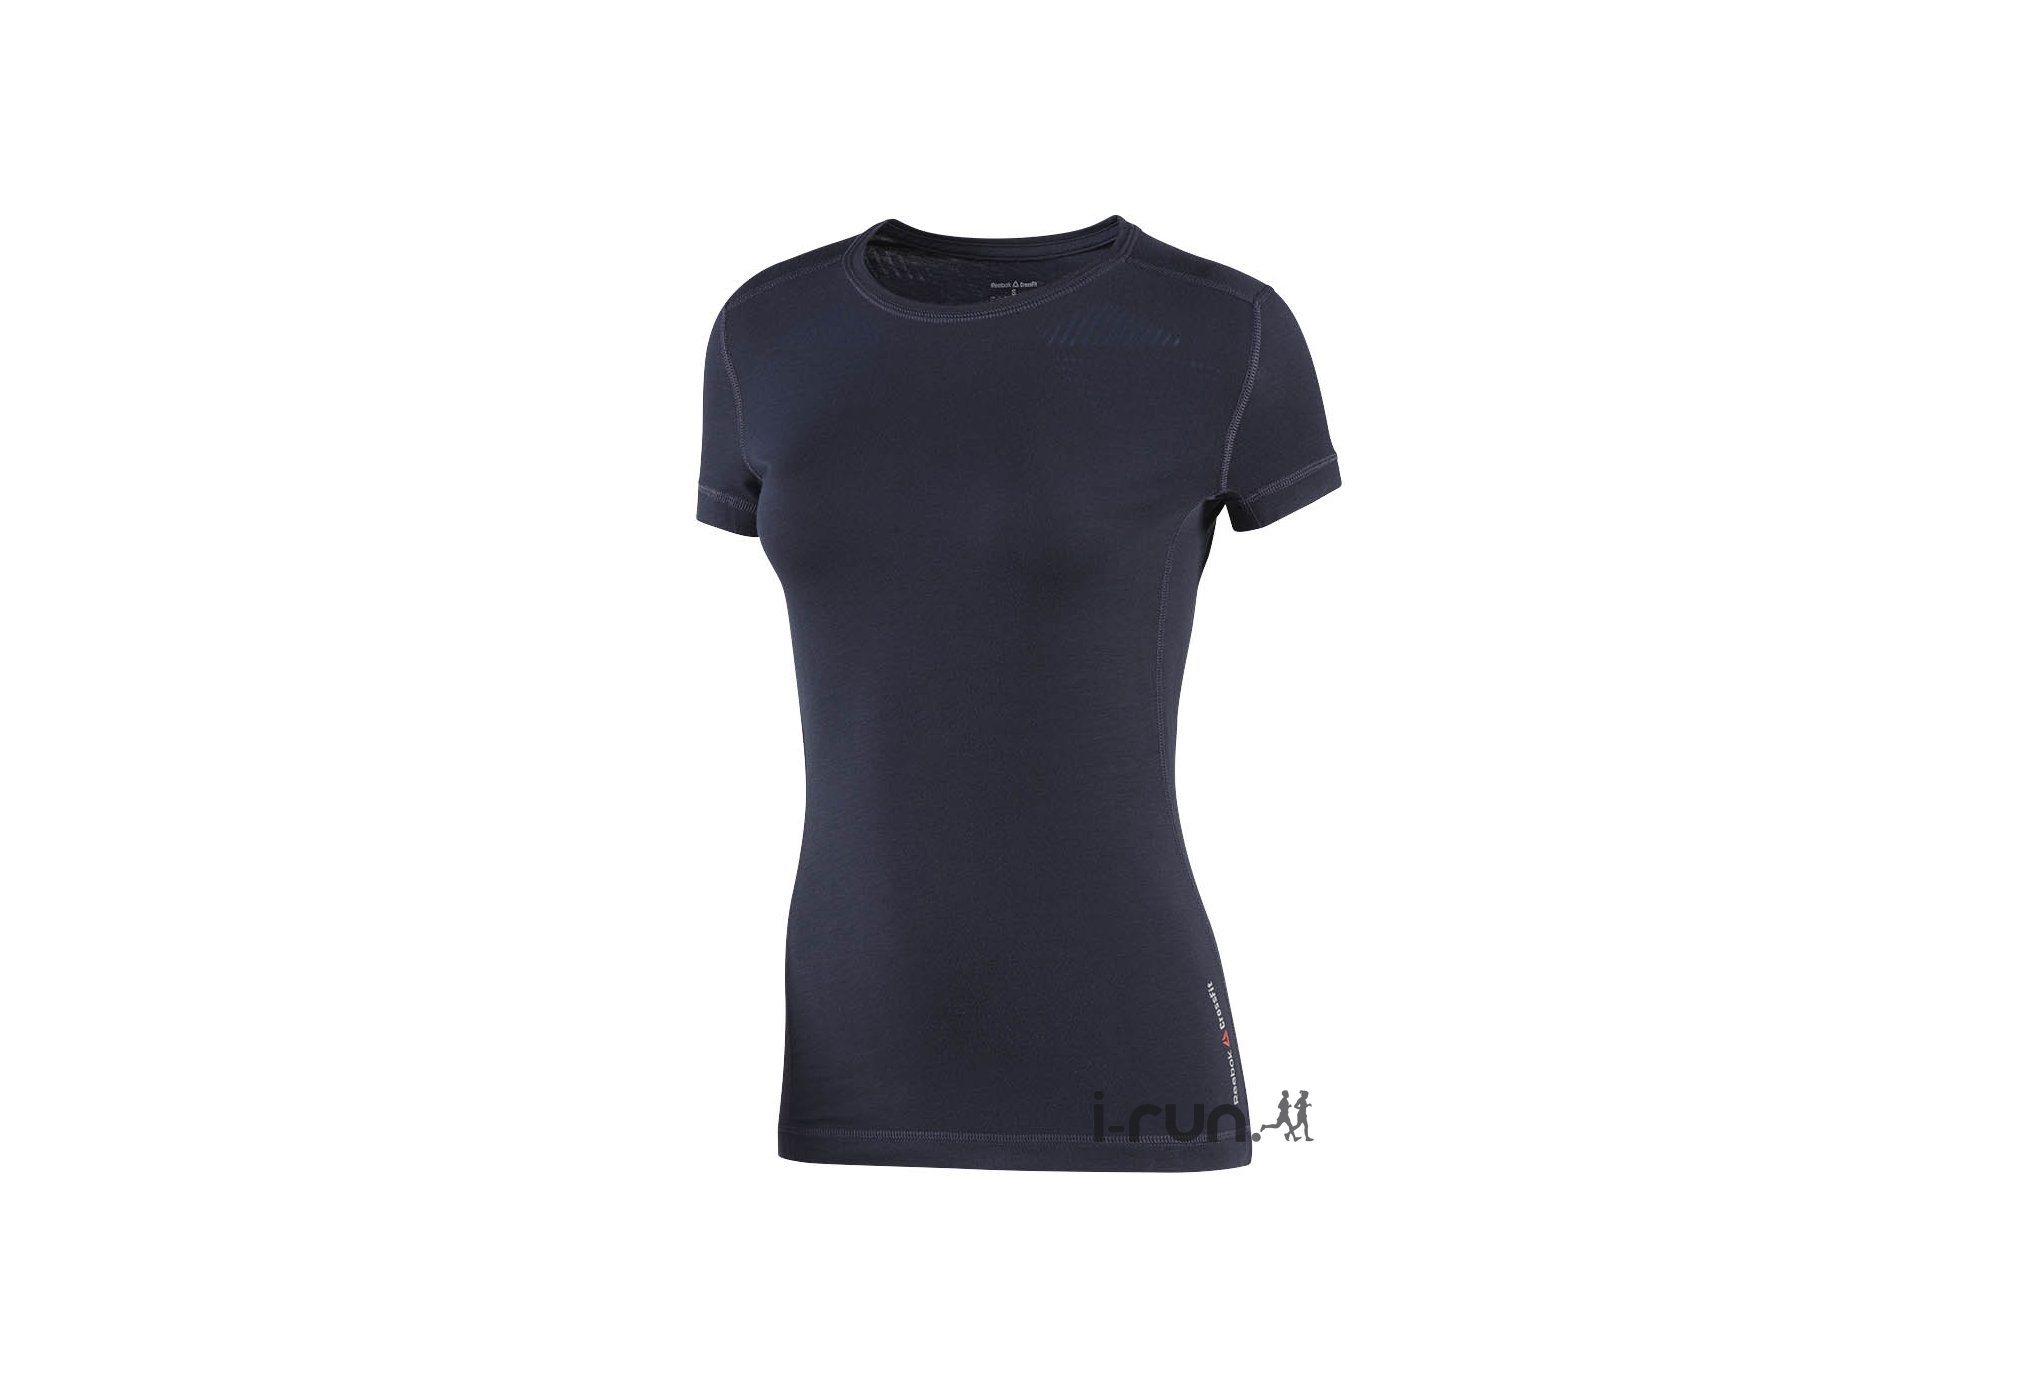 Reebok Tee-shirt CrossFit LightWeight W vêtement running femme